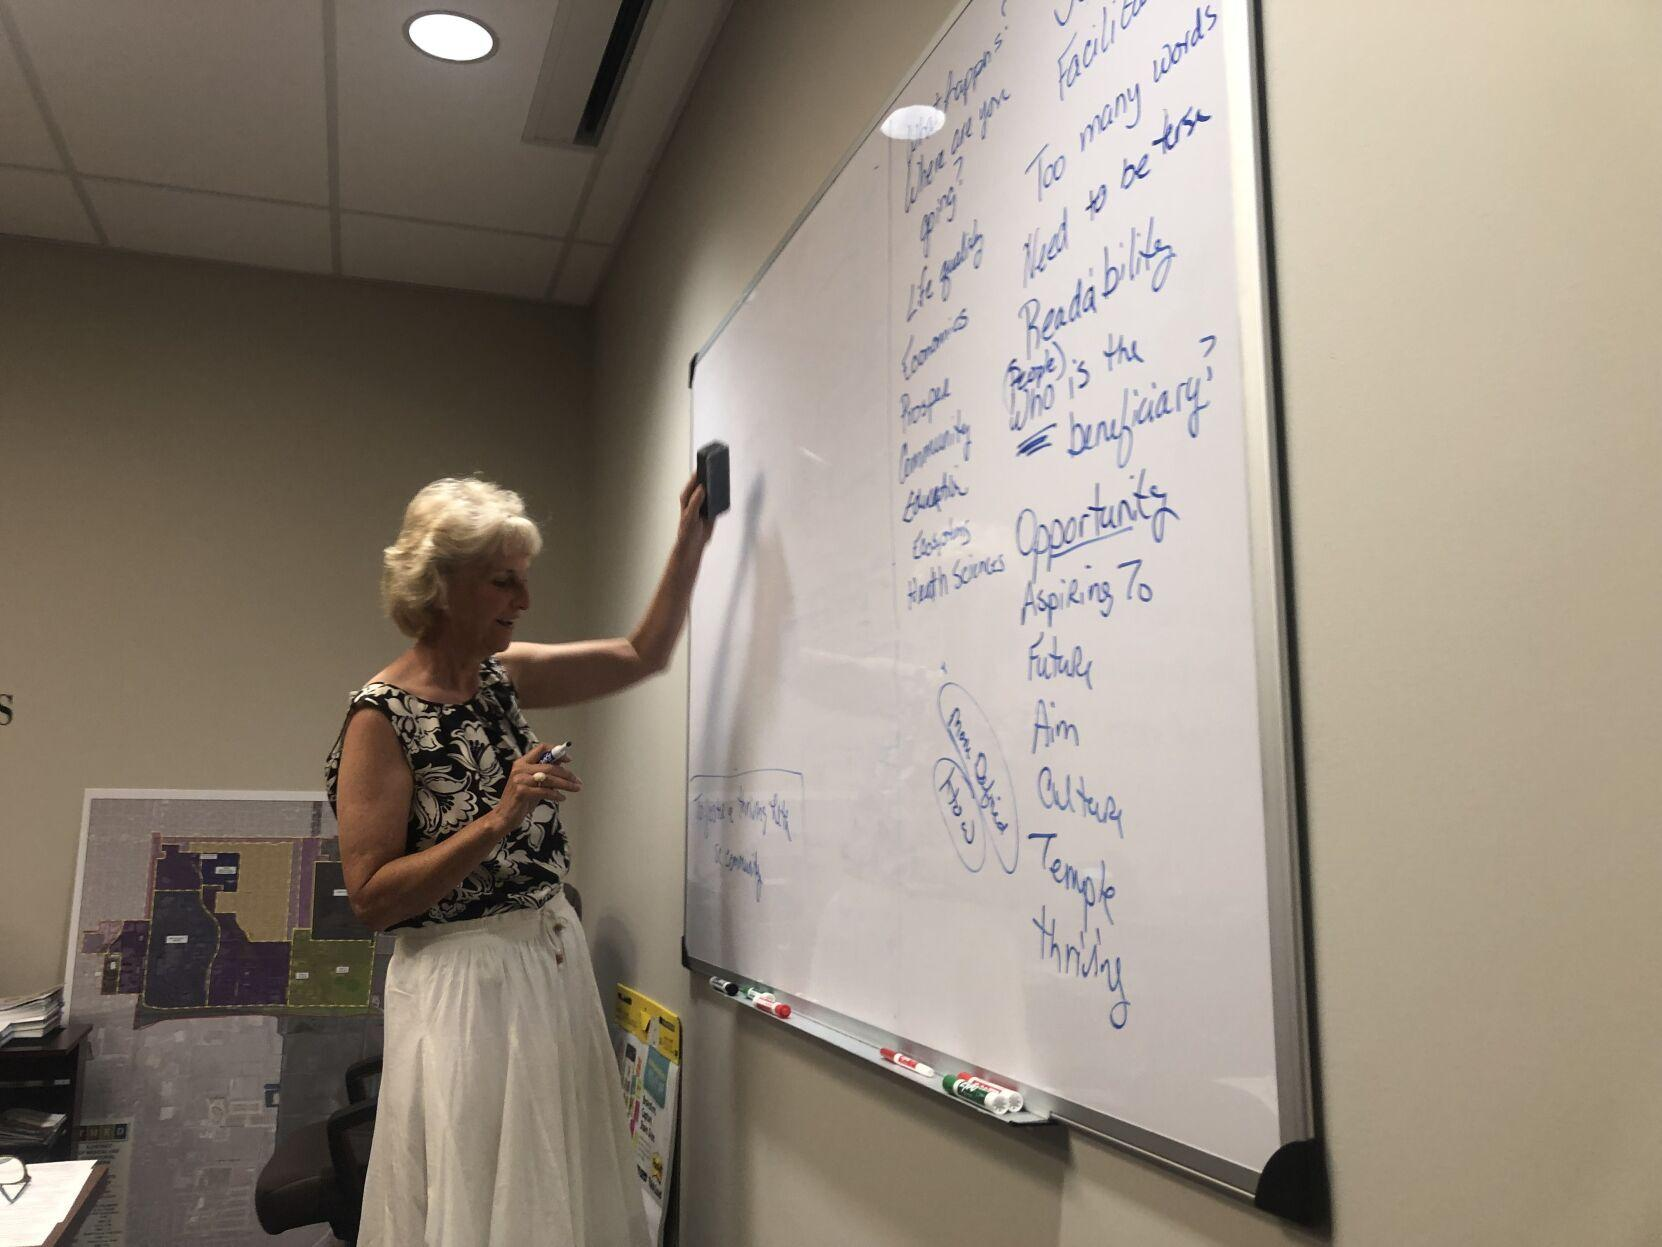 Refining the vision: Bioscience board commits to fostering health science community